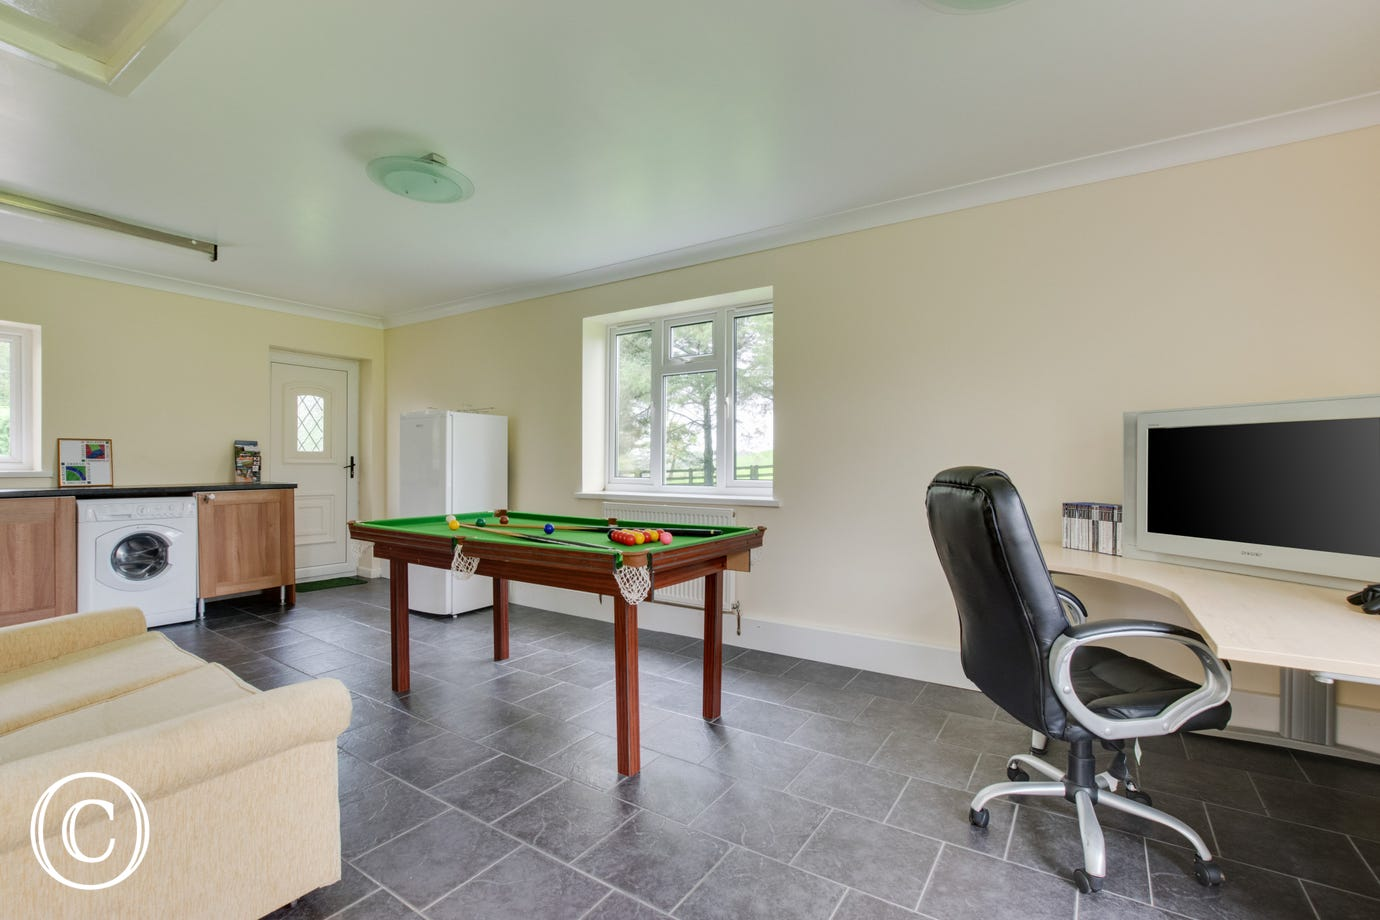 Games room with pool table and gaming area